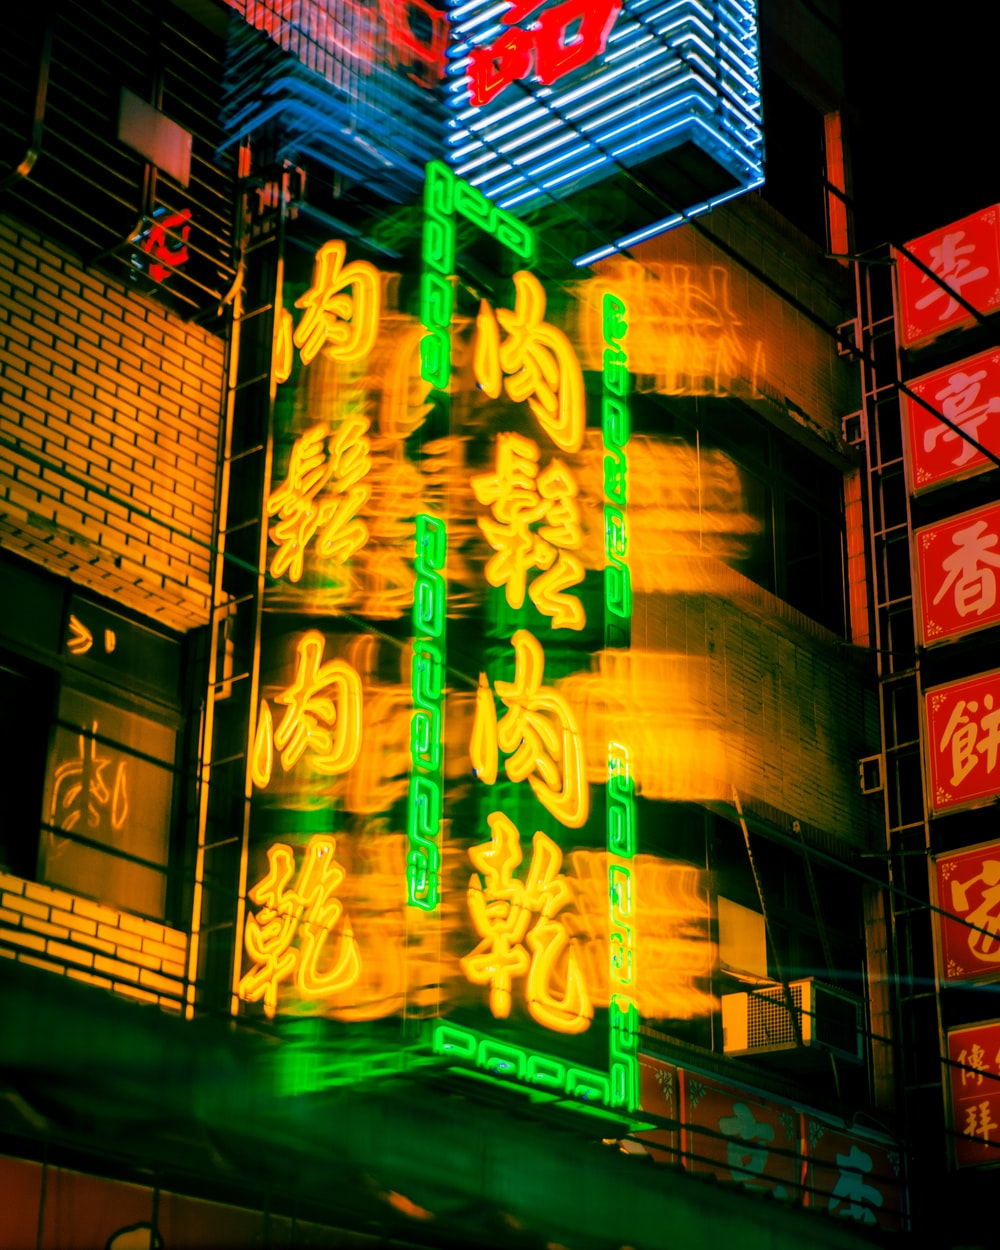 yellow and green neon light signage